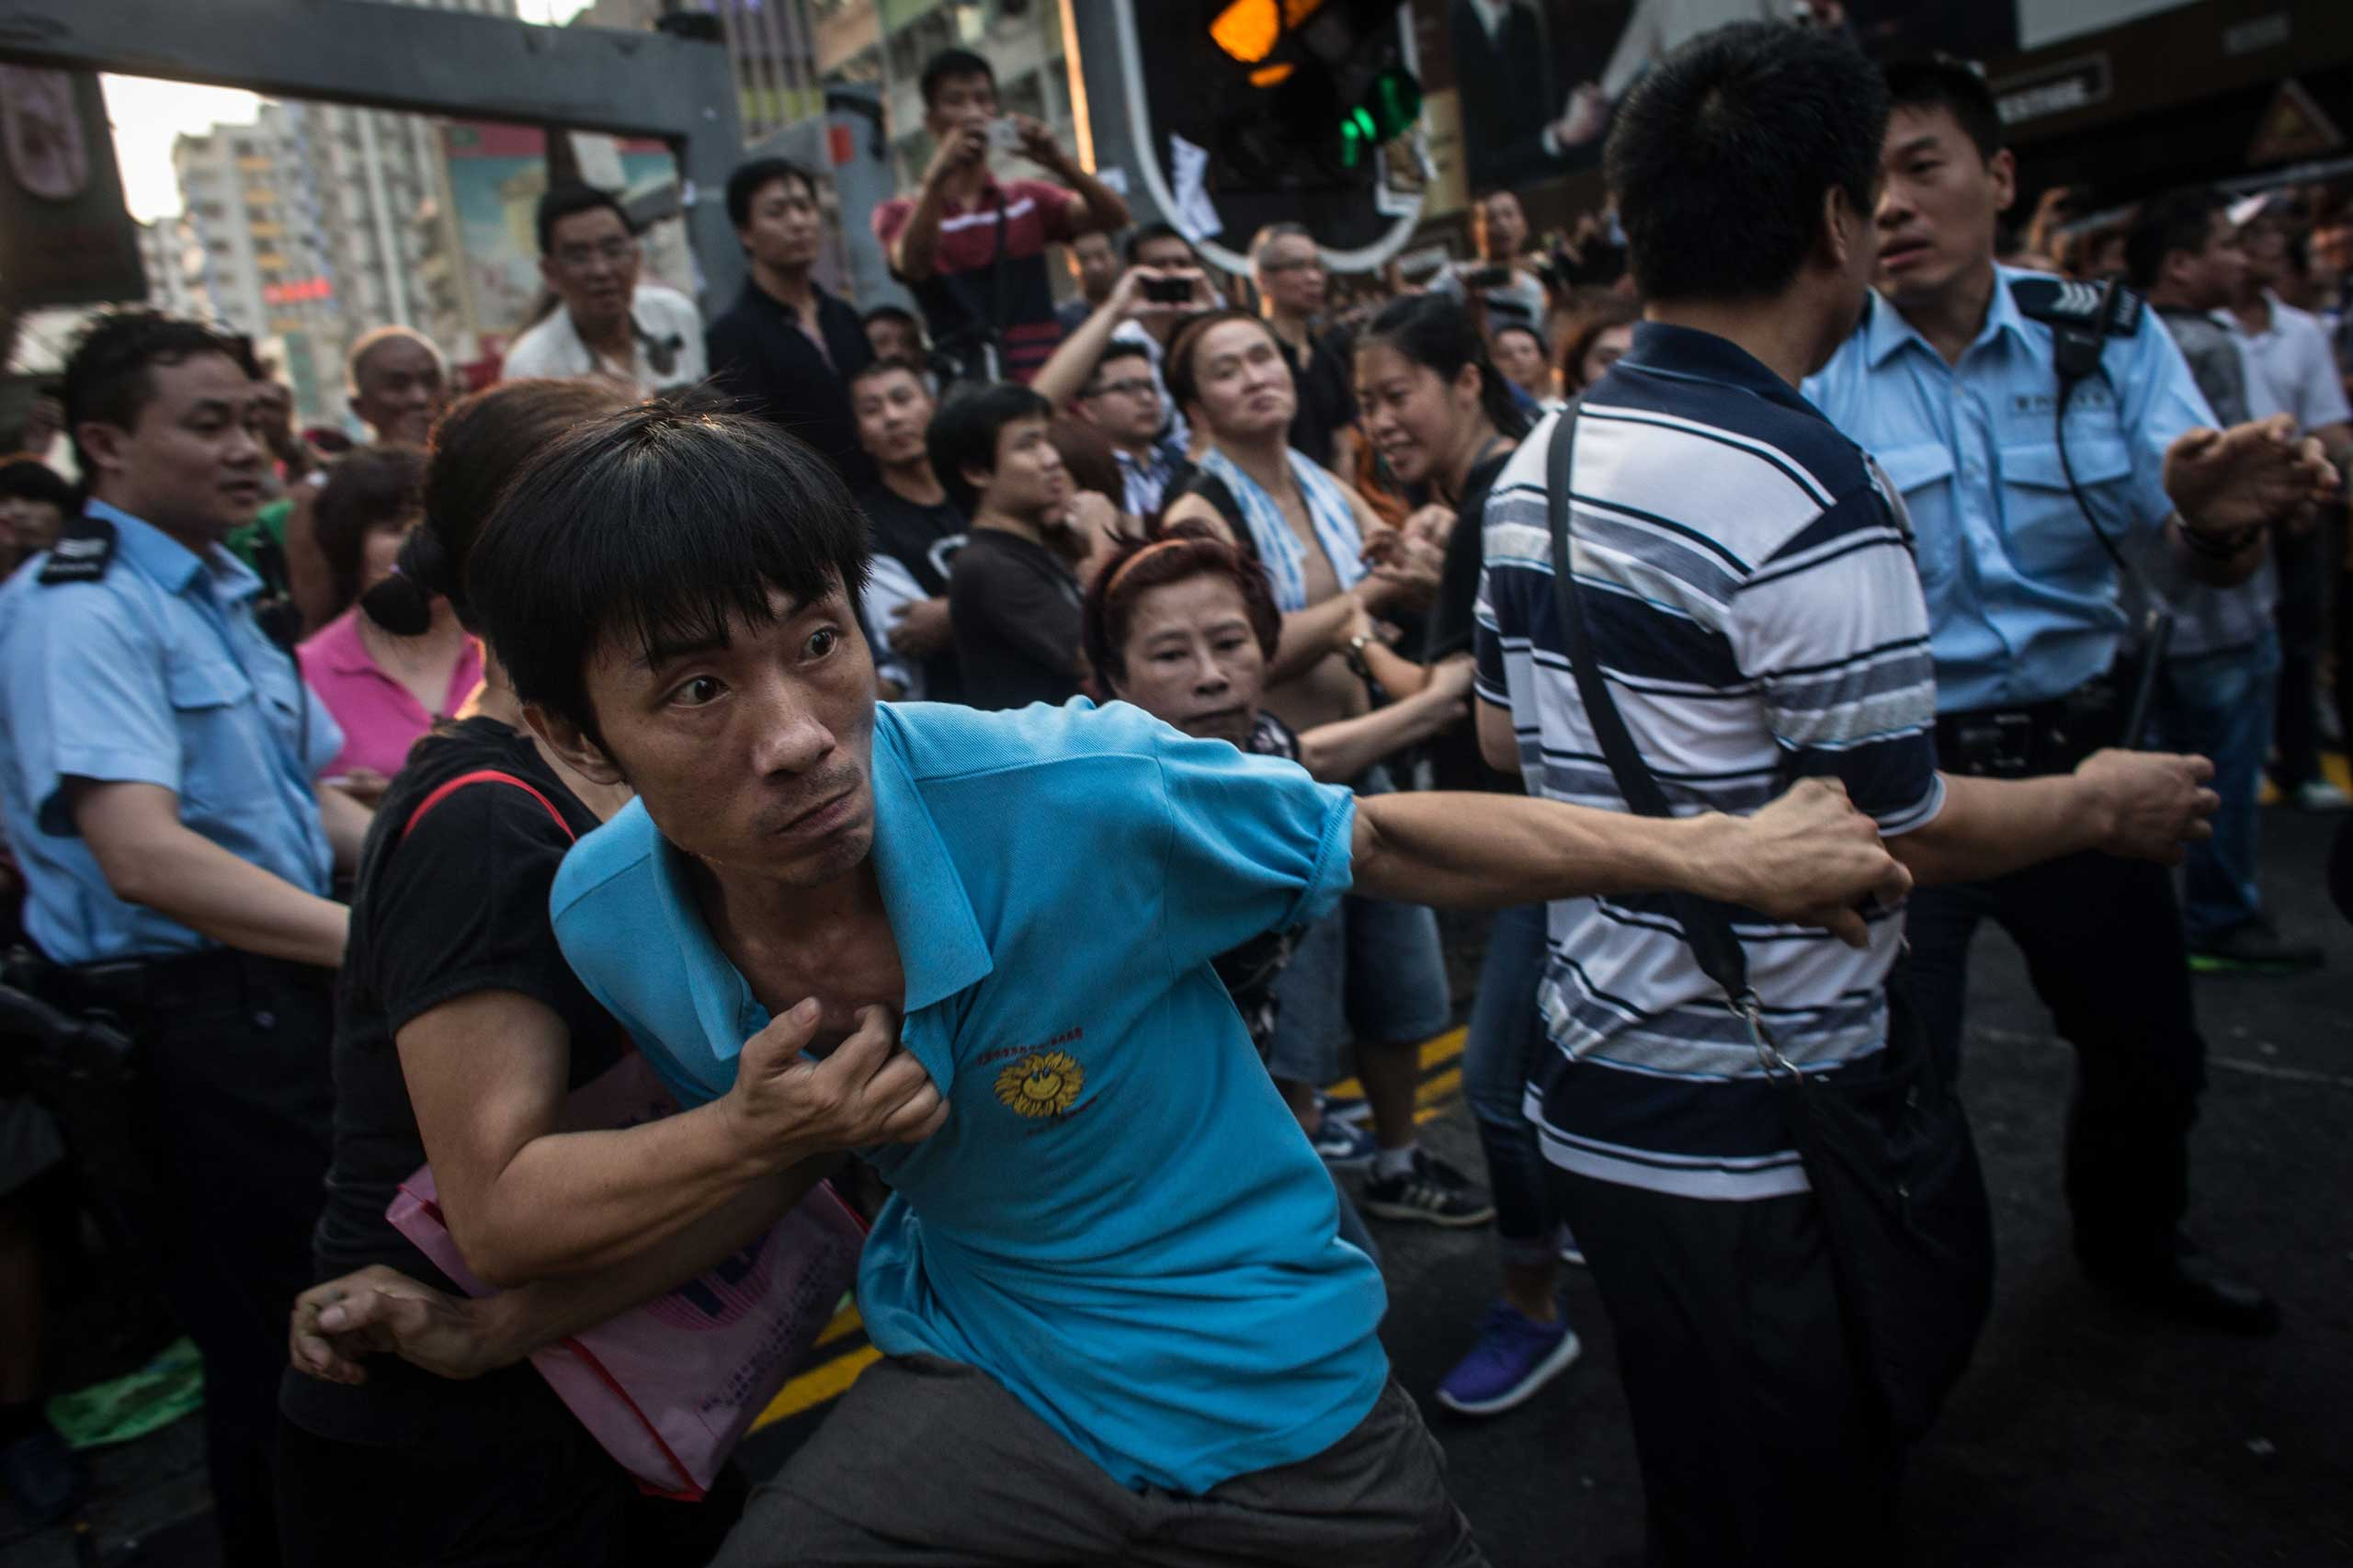 A local resident breaks through police lines and attempts to reach the pro-democracy tent on Oct. 3, 2014 in Mong Kok, Hong Kong.